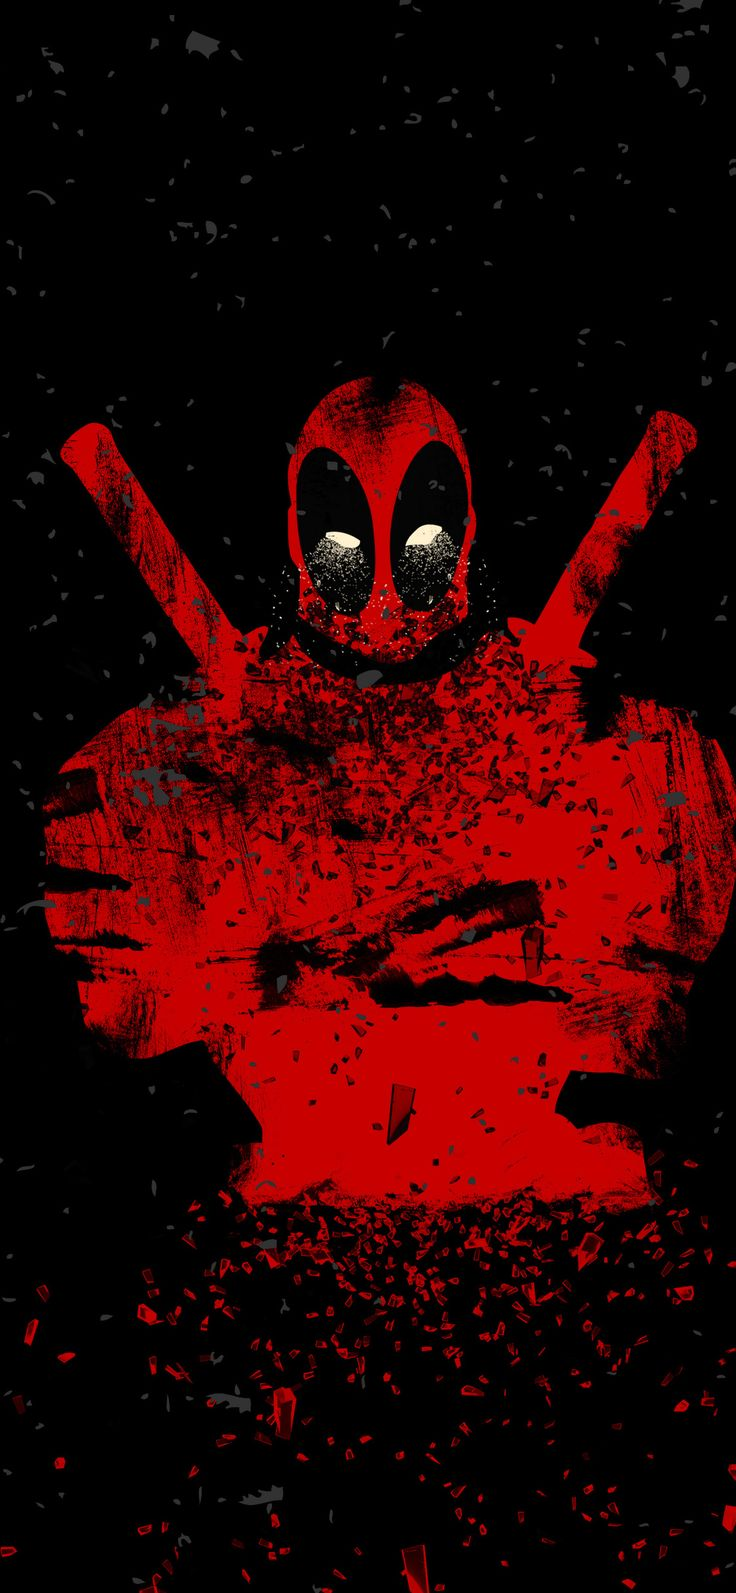 Deadpool Wallpaper 4k Iphone | 3D Wallpapers